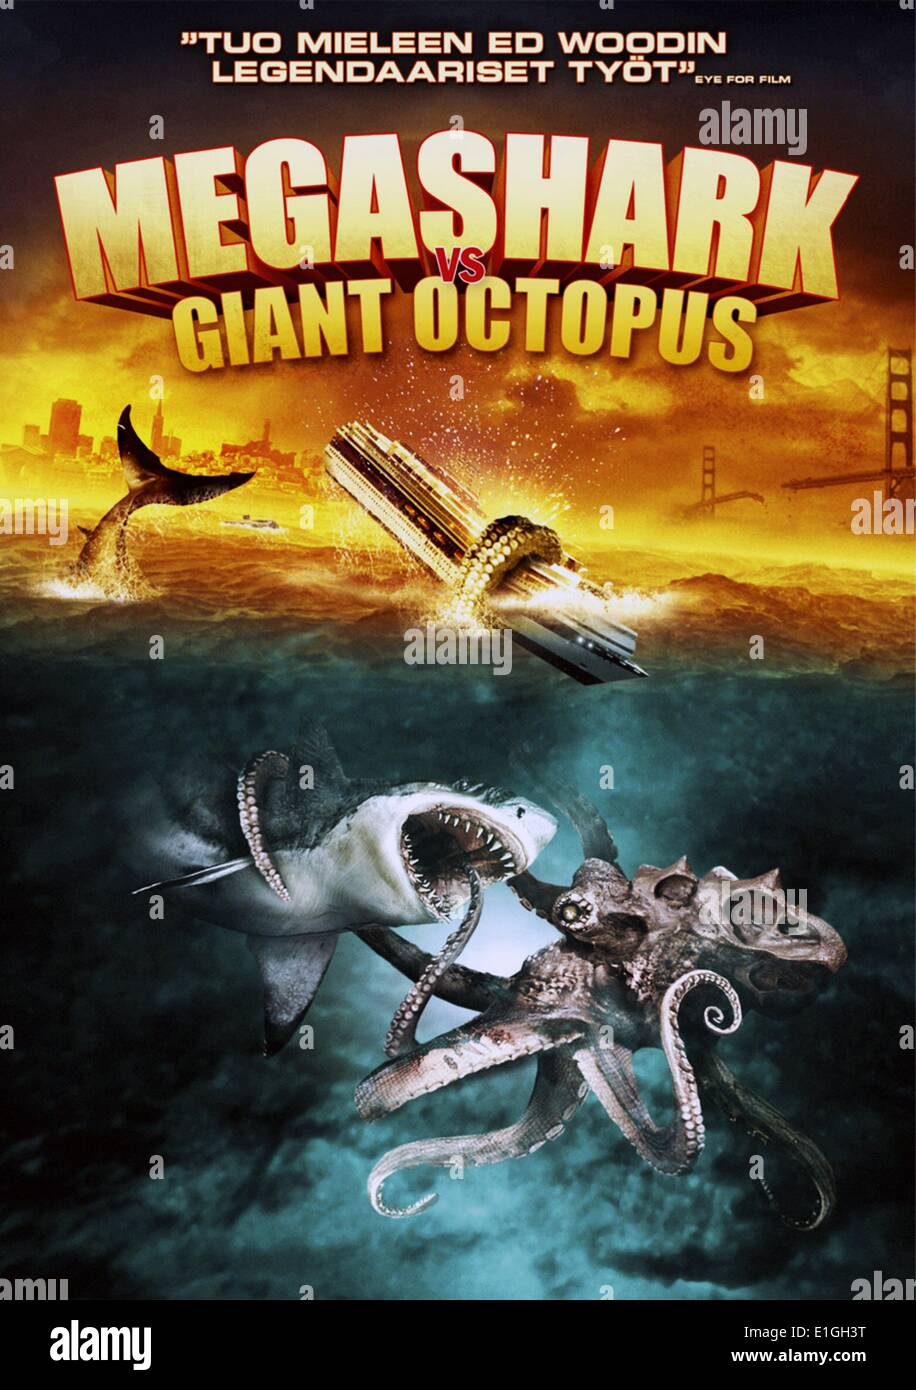 'Megashark versus Giant Octopus' a monster/disaster film released on May 19, 2009 - Stock Image